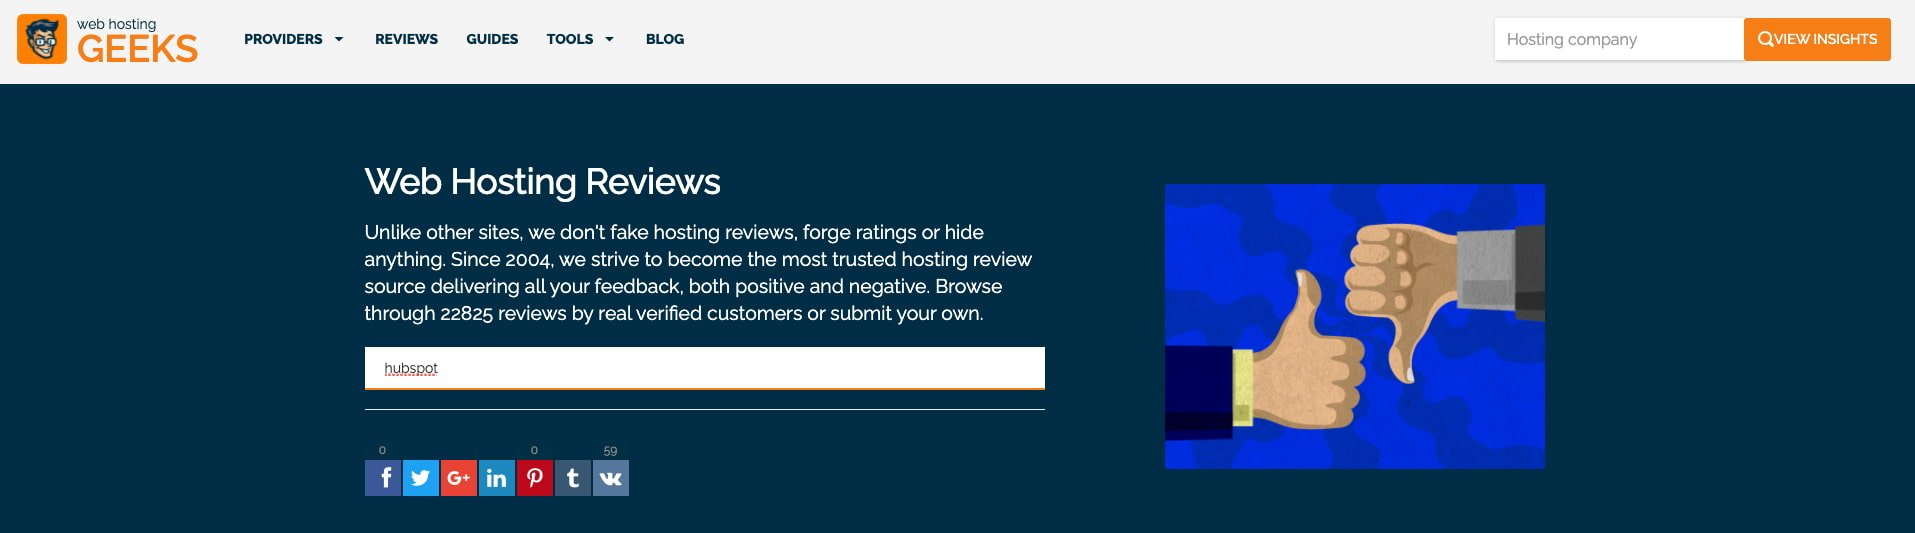 homepage for a web hosting review website